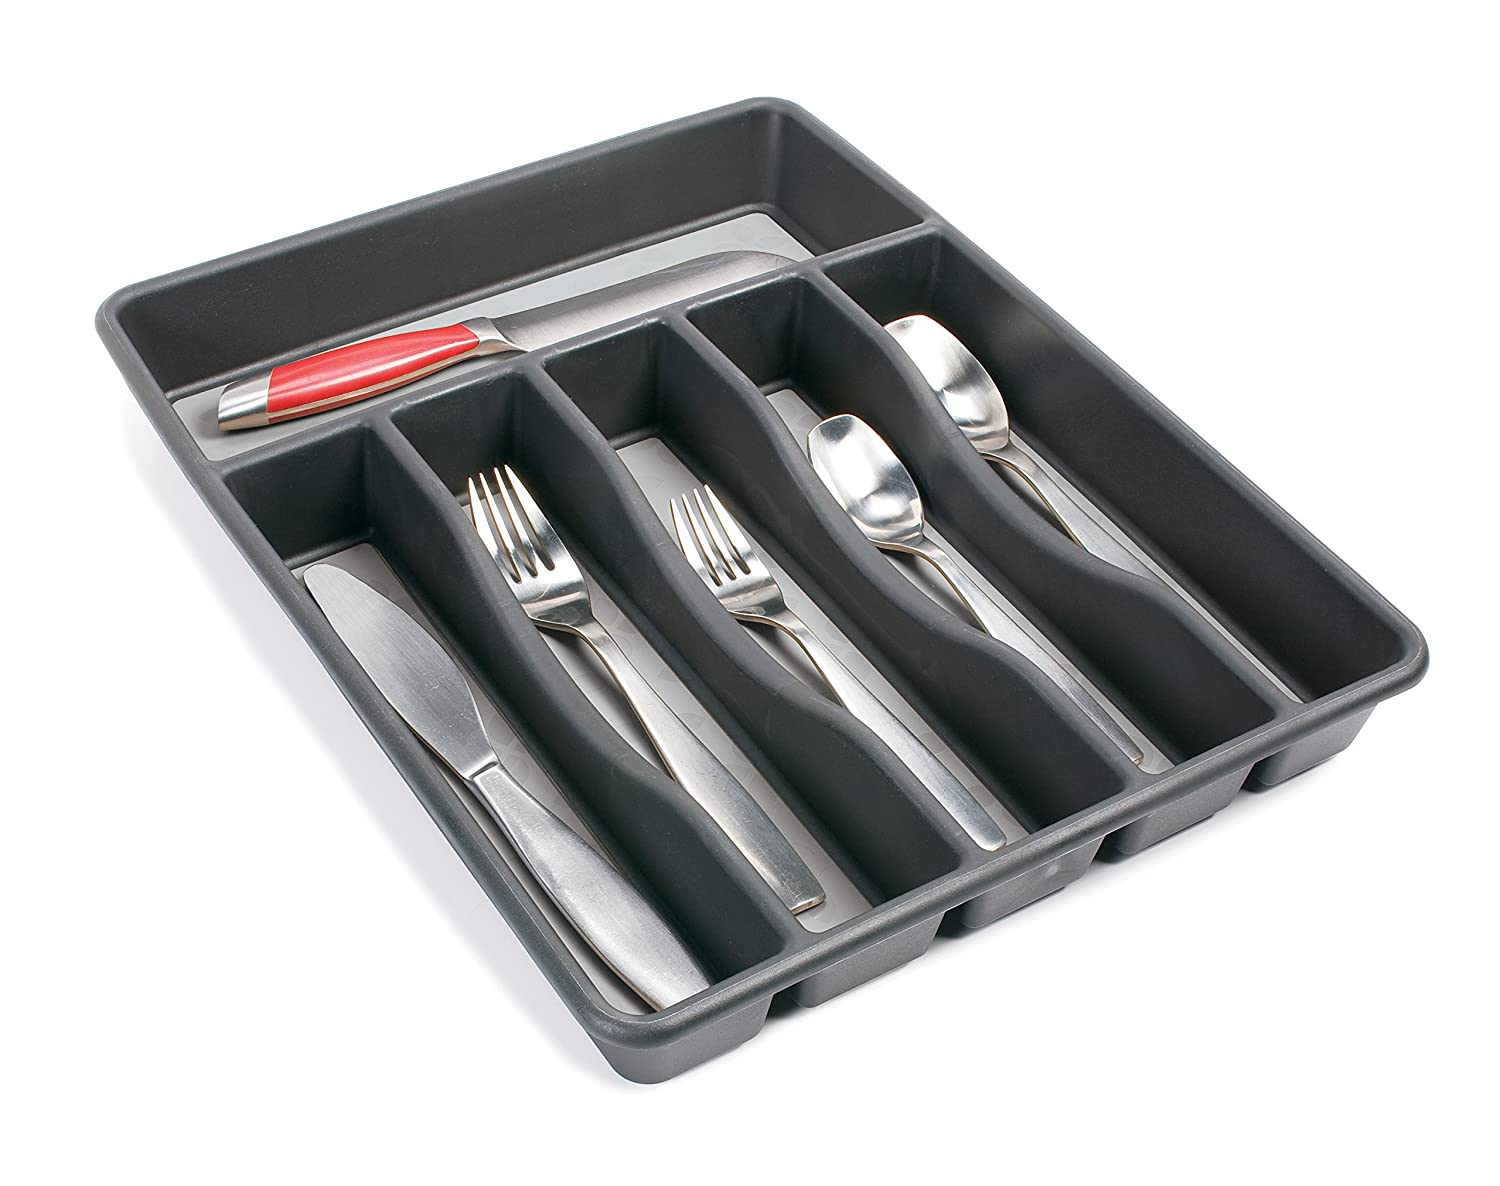 Kitchen cabinets tray storage - Rubbermaid No Slip Silverware Tray Organizer Large Black With Grey